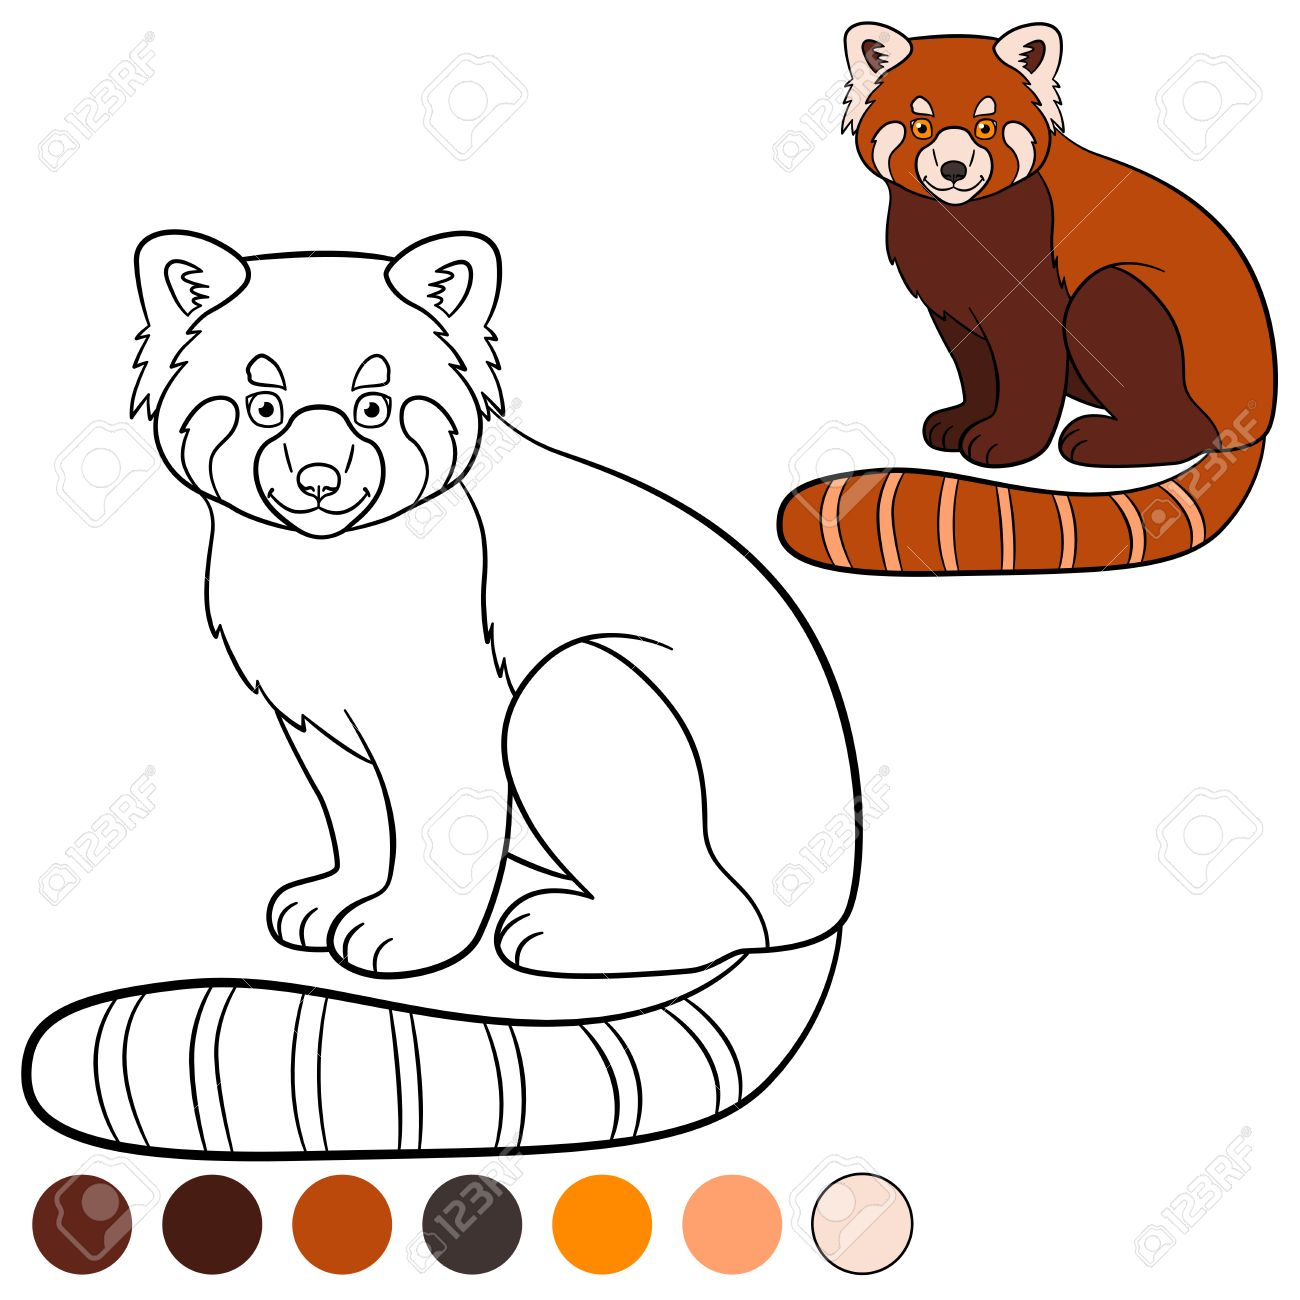 Coloring Page Red Panda Little Cute Red Panda Sits And Smiles